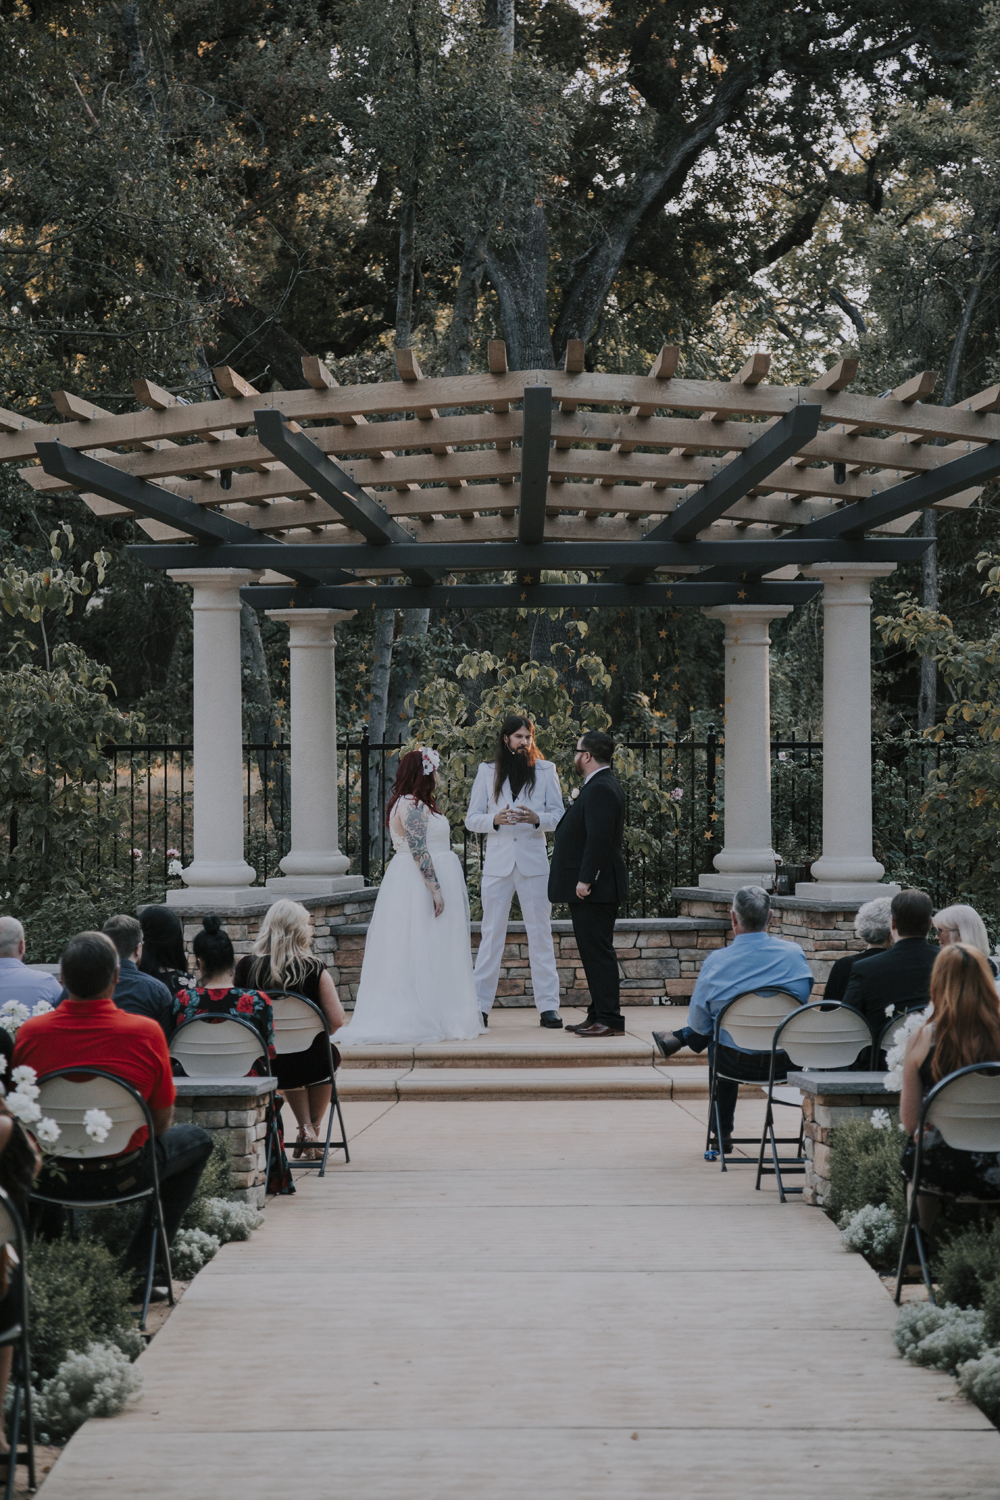 Wedding-photographer-at-Creekside-Rose-Garden-Chico-CA79.jpg